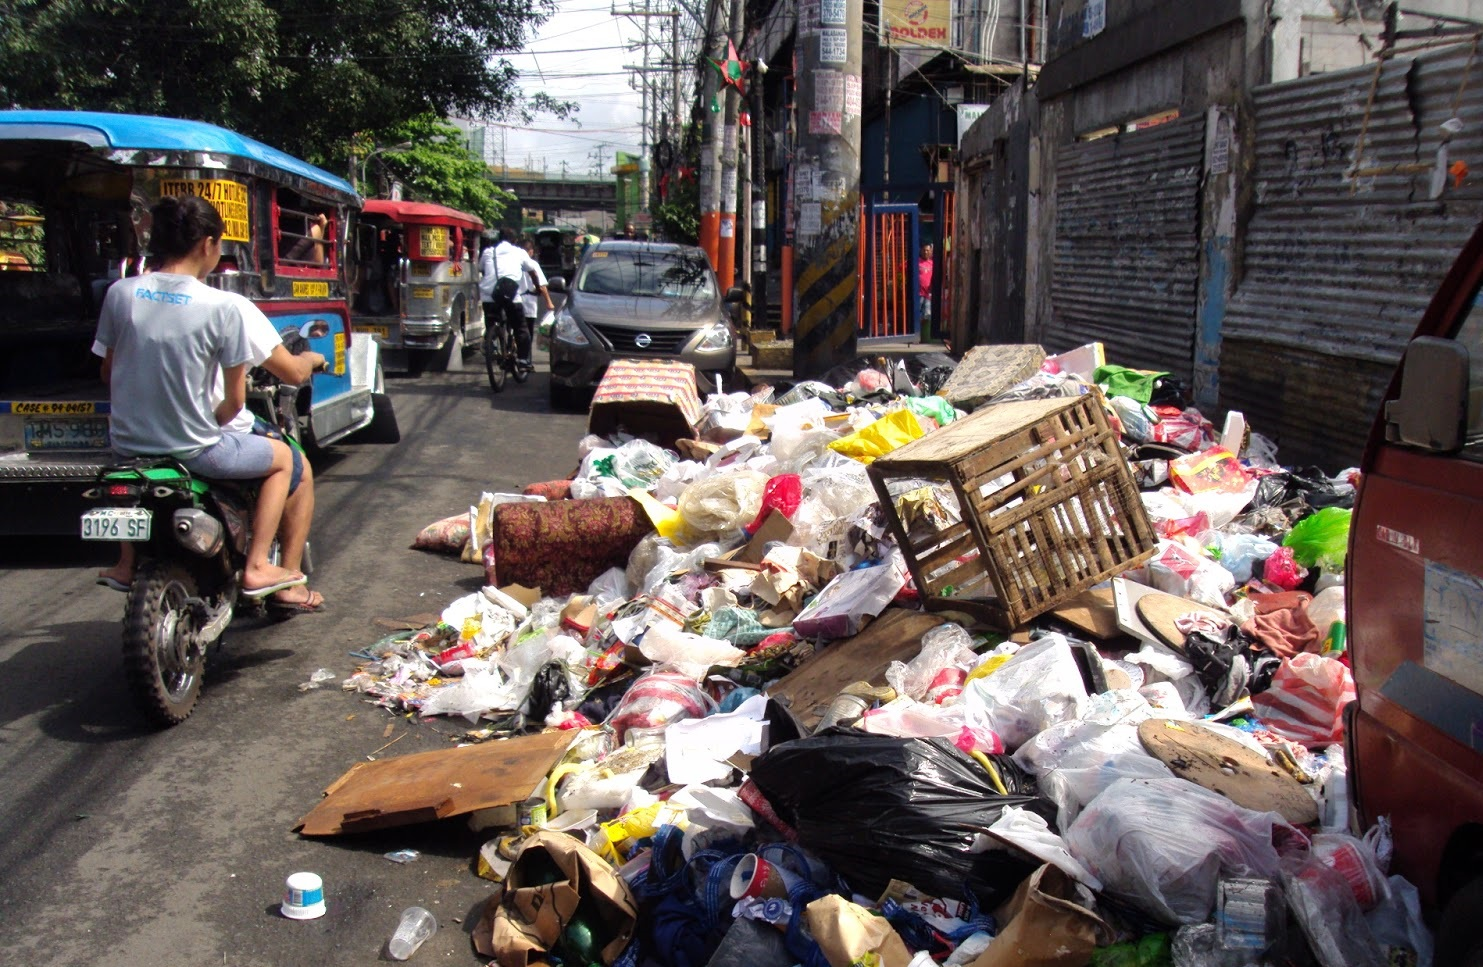 Pinoys' Lack Of Discipline: Our Stumbling Block To Progress